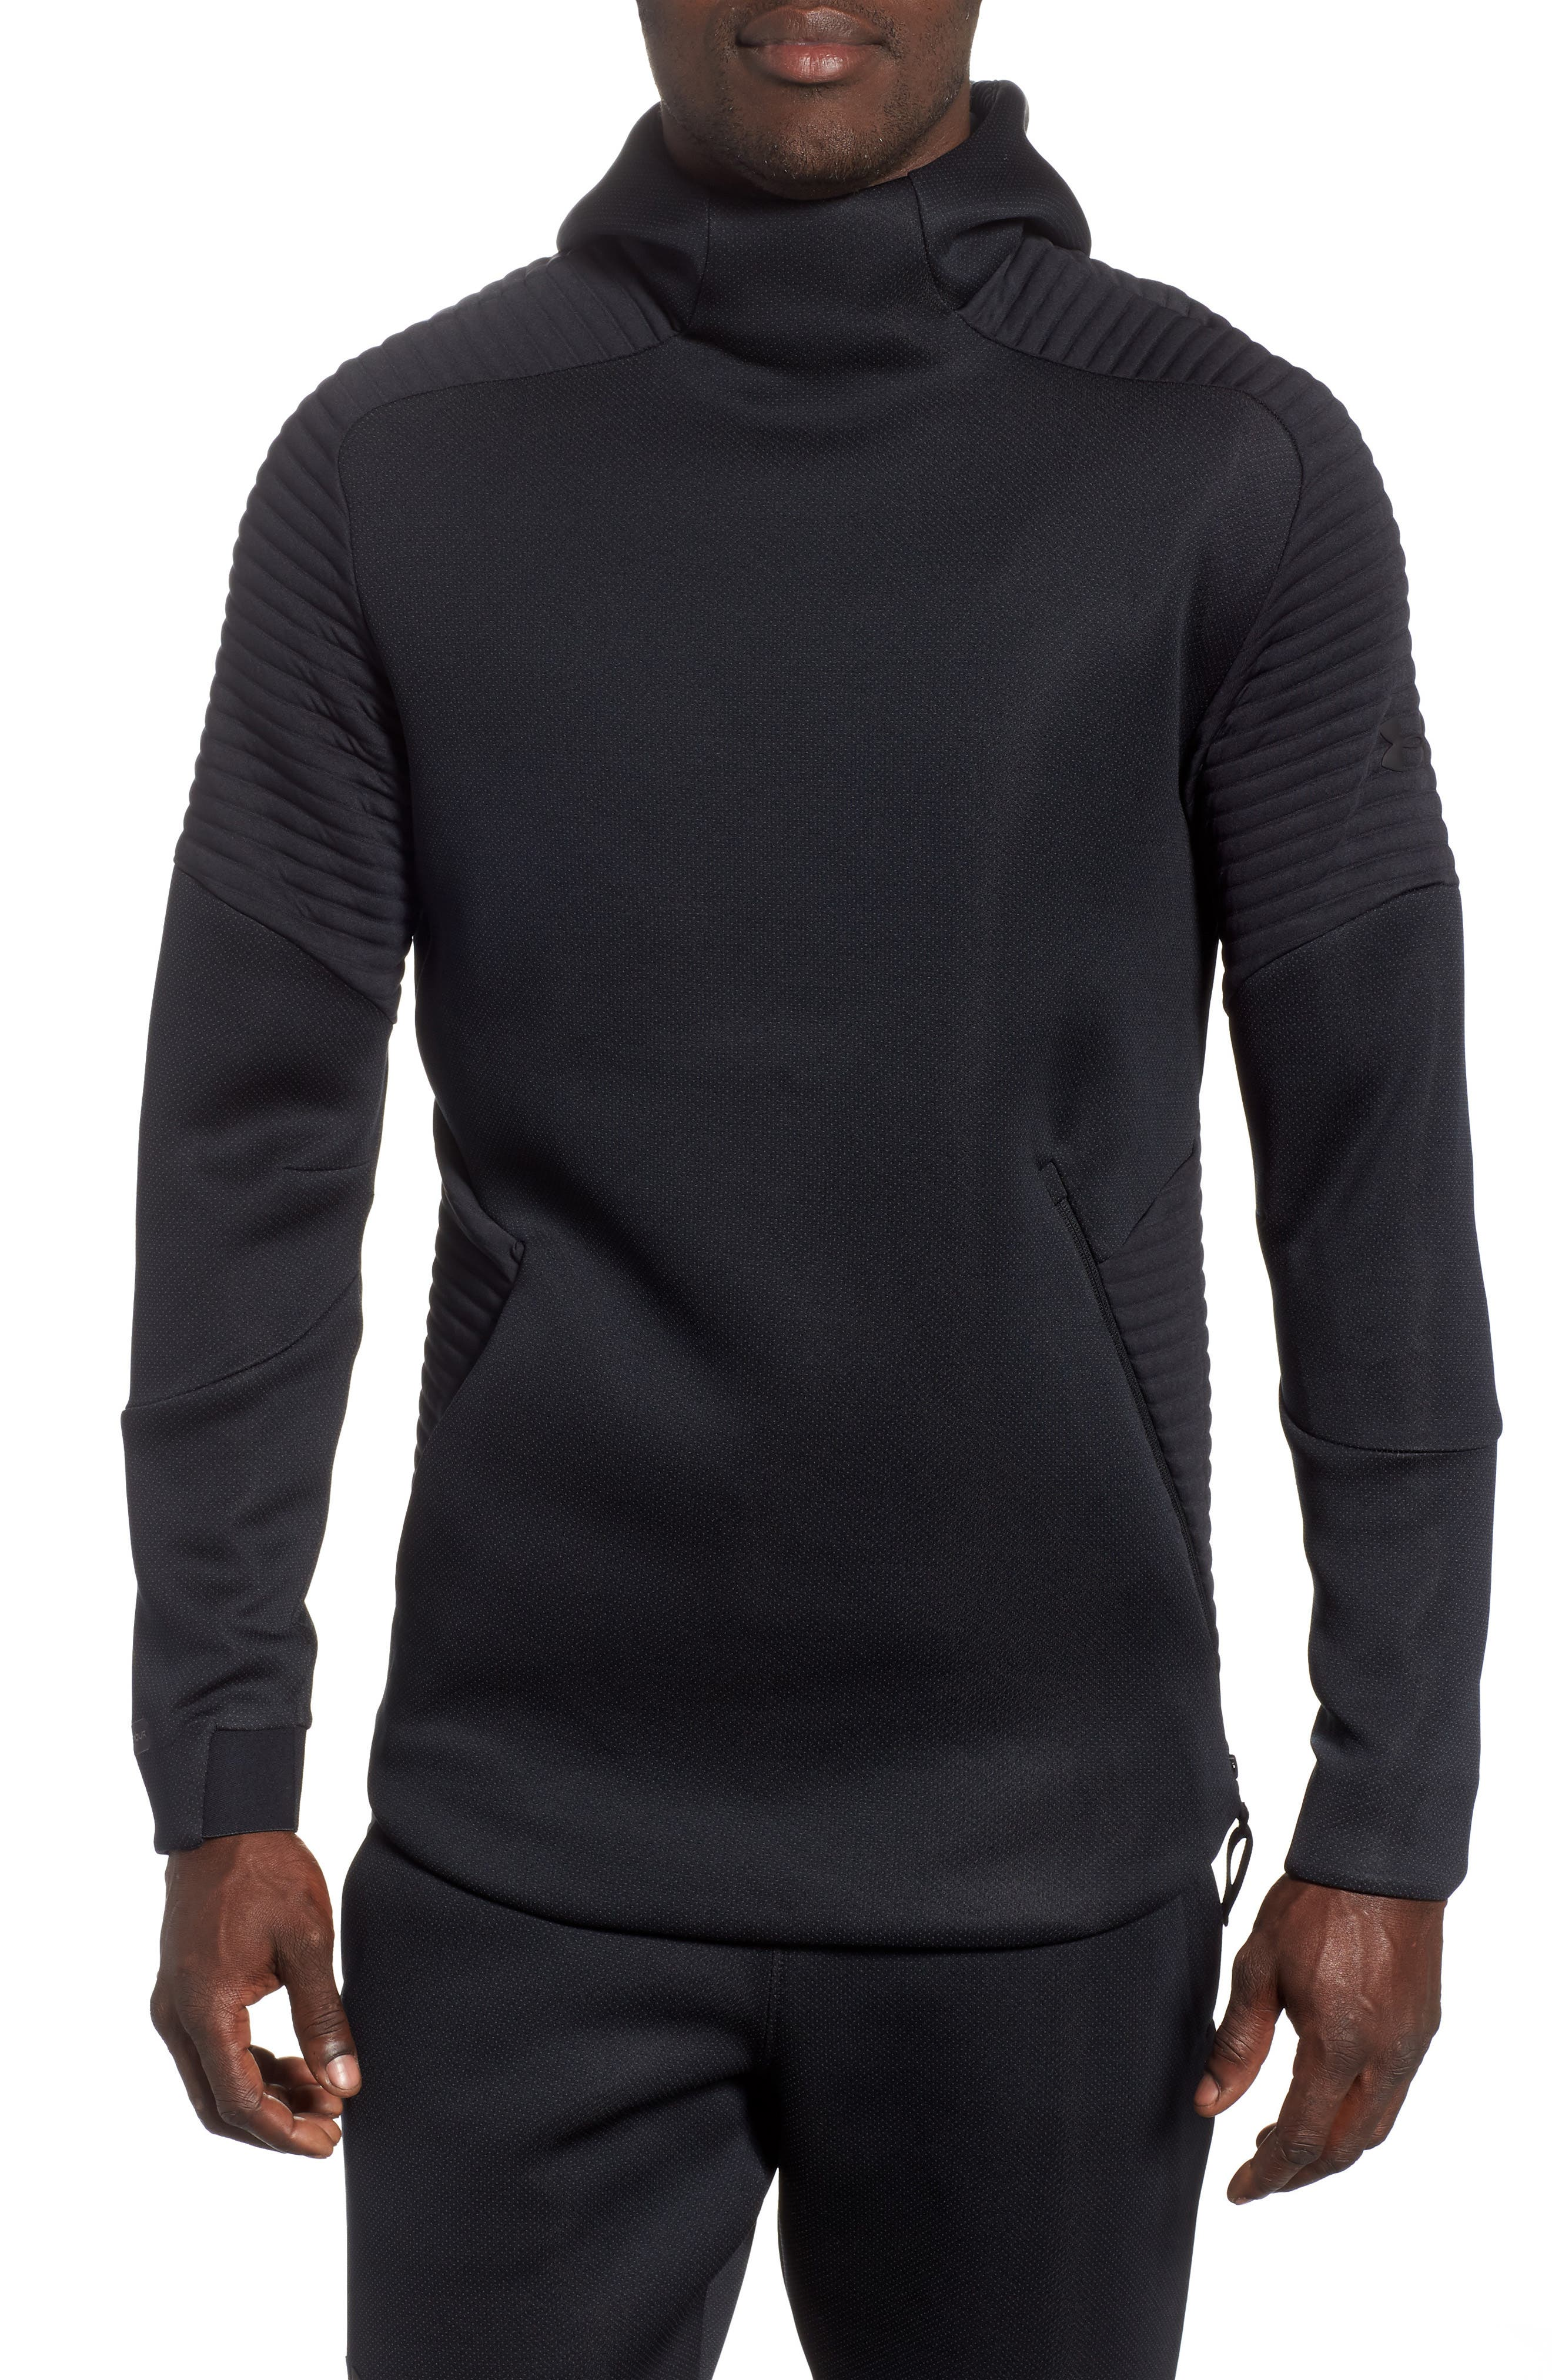 Unstoppable /MOVE Hoodie,                             Main thumbnail 1, color,                             BLACK/ CHARCOAL/ BLACK